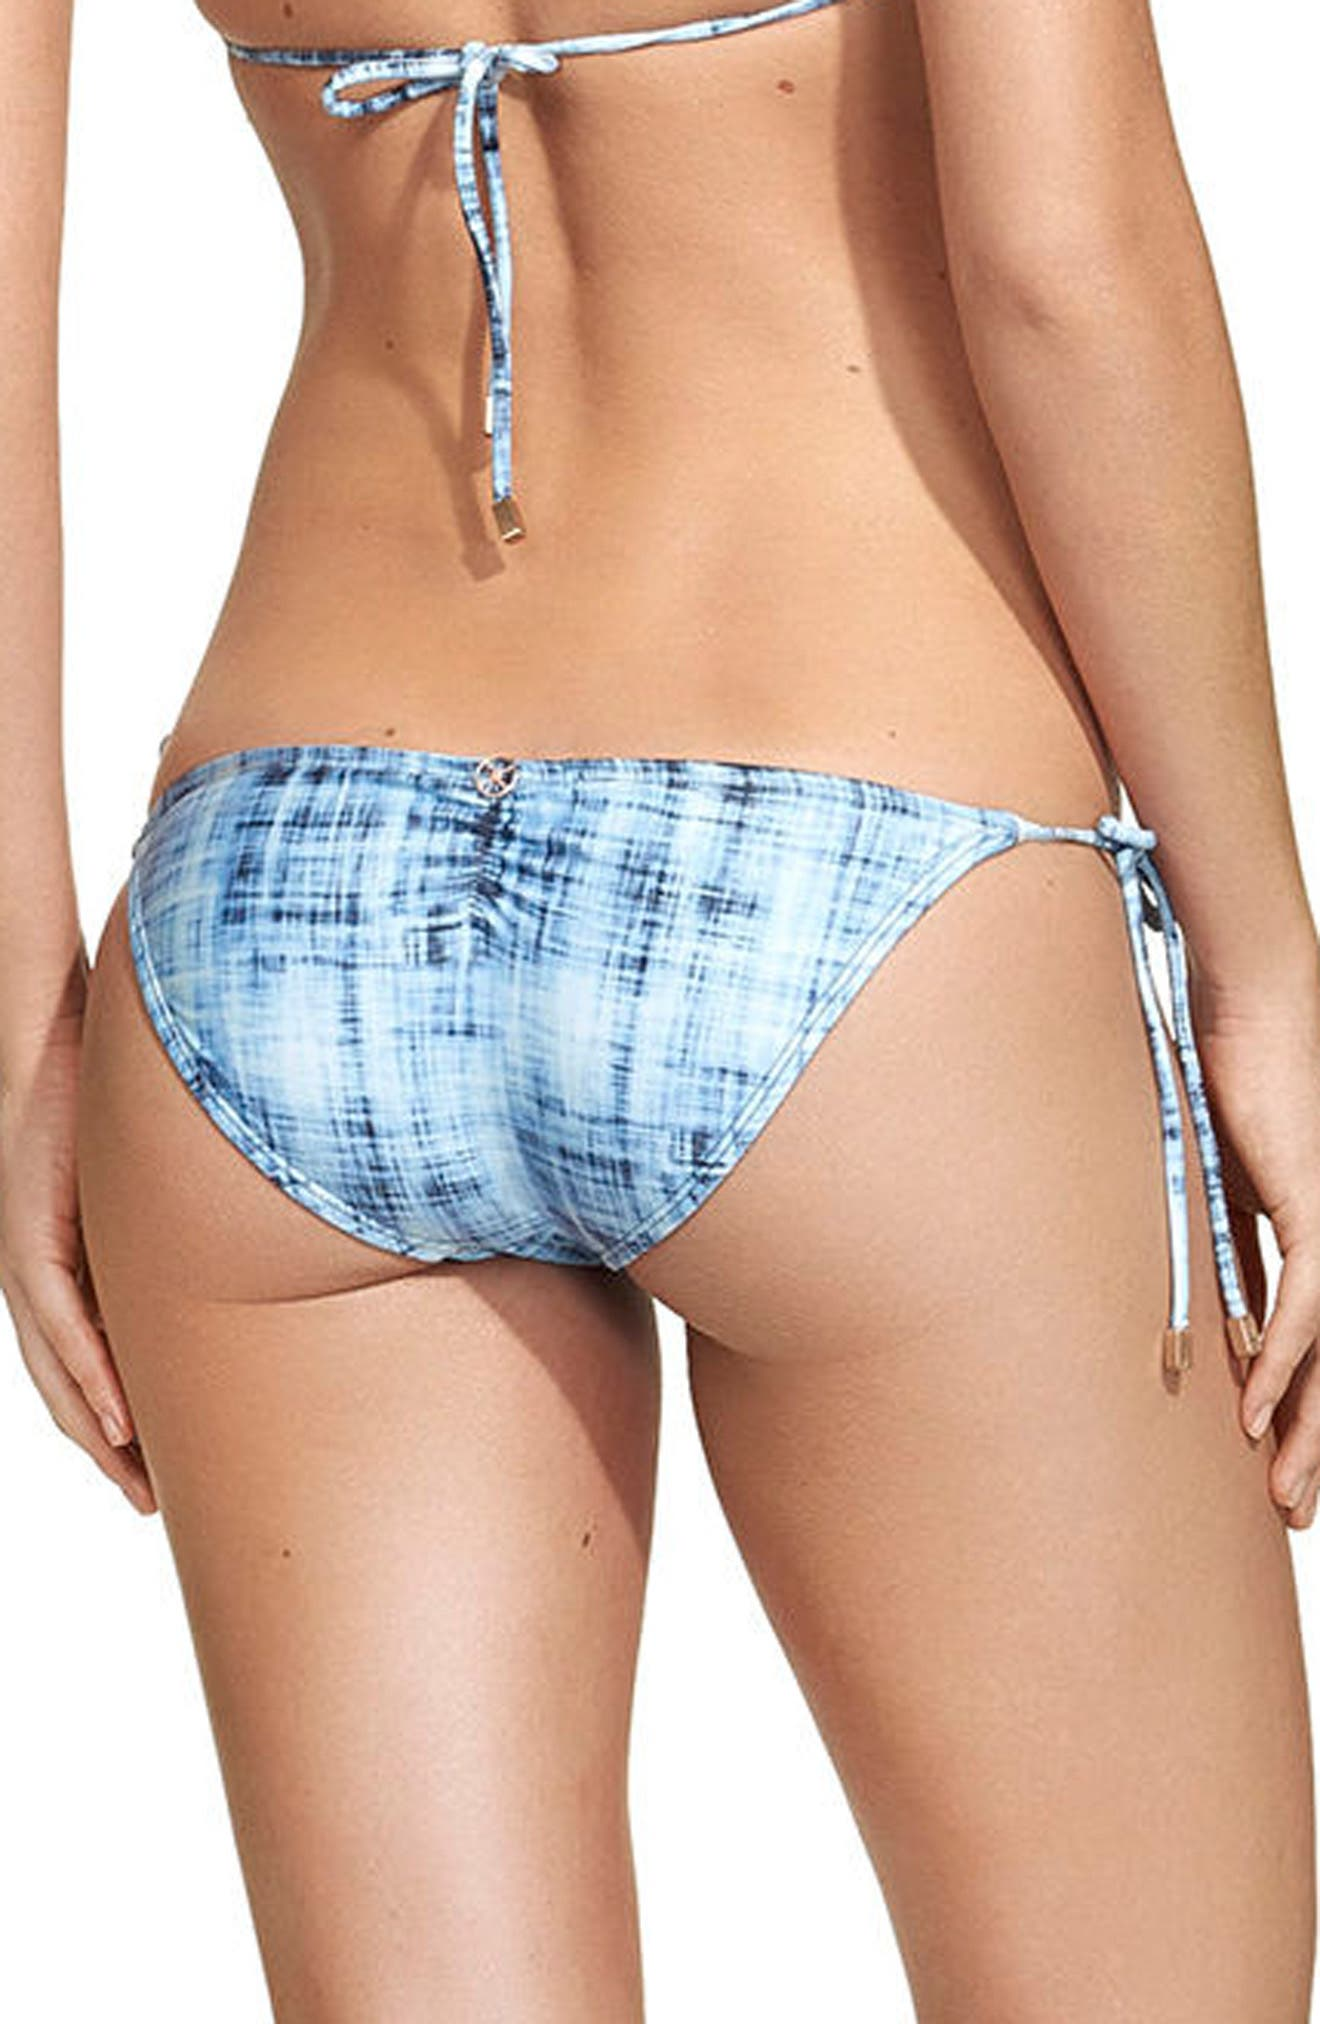 VIX SWIMWEAR Rustic Ripple Side Tie Bikini Bottoms